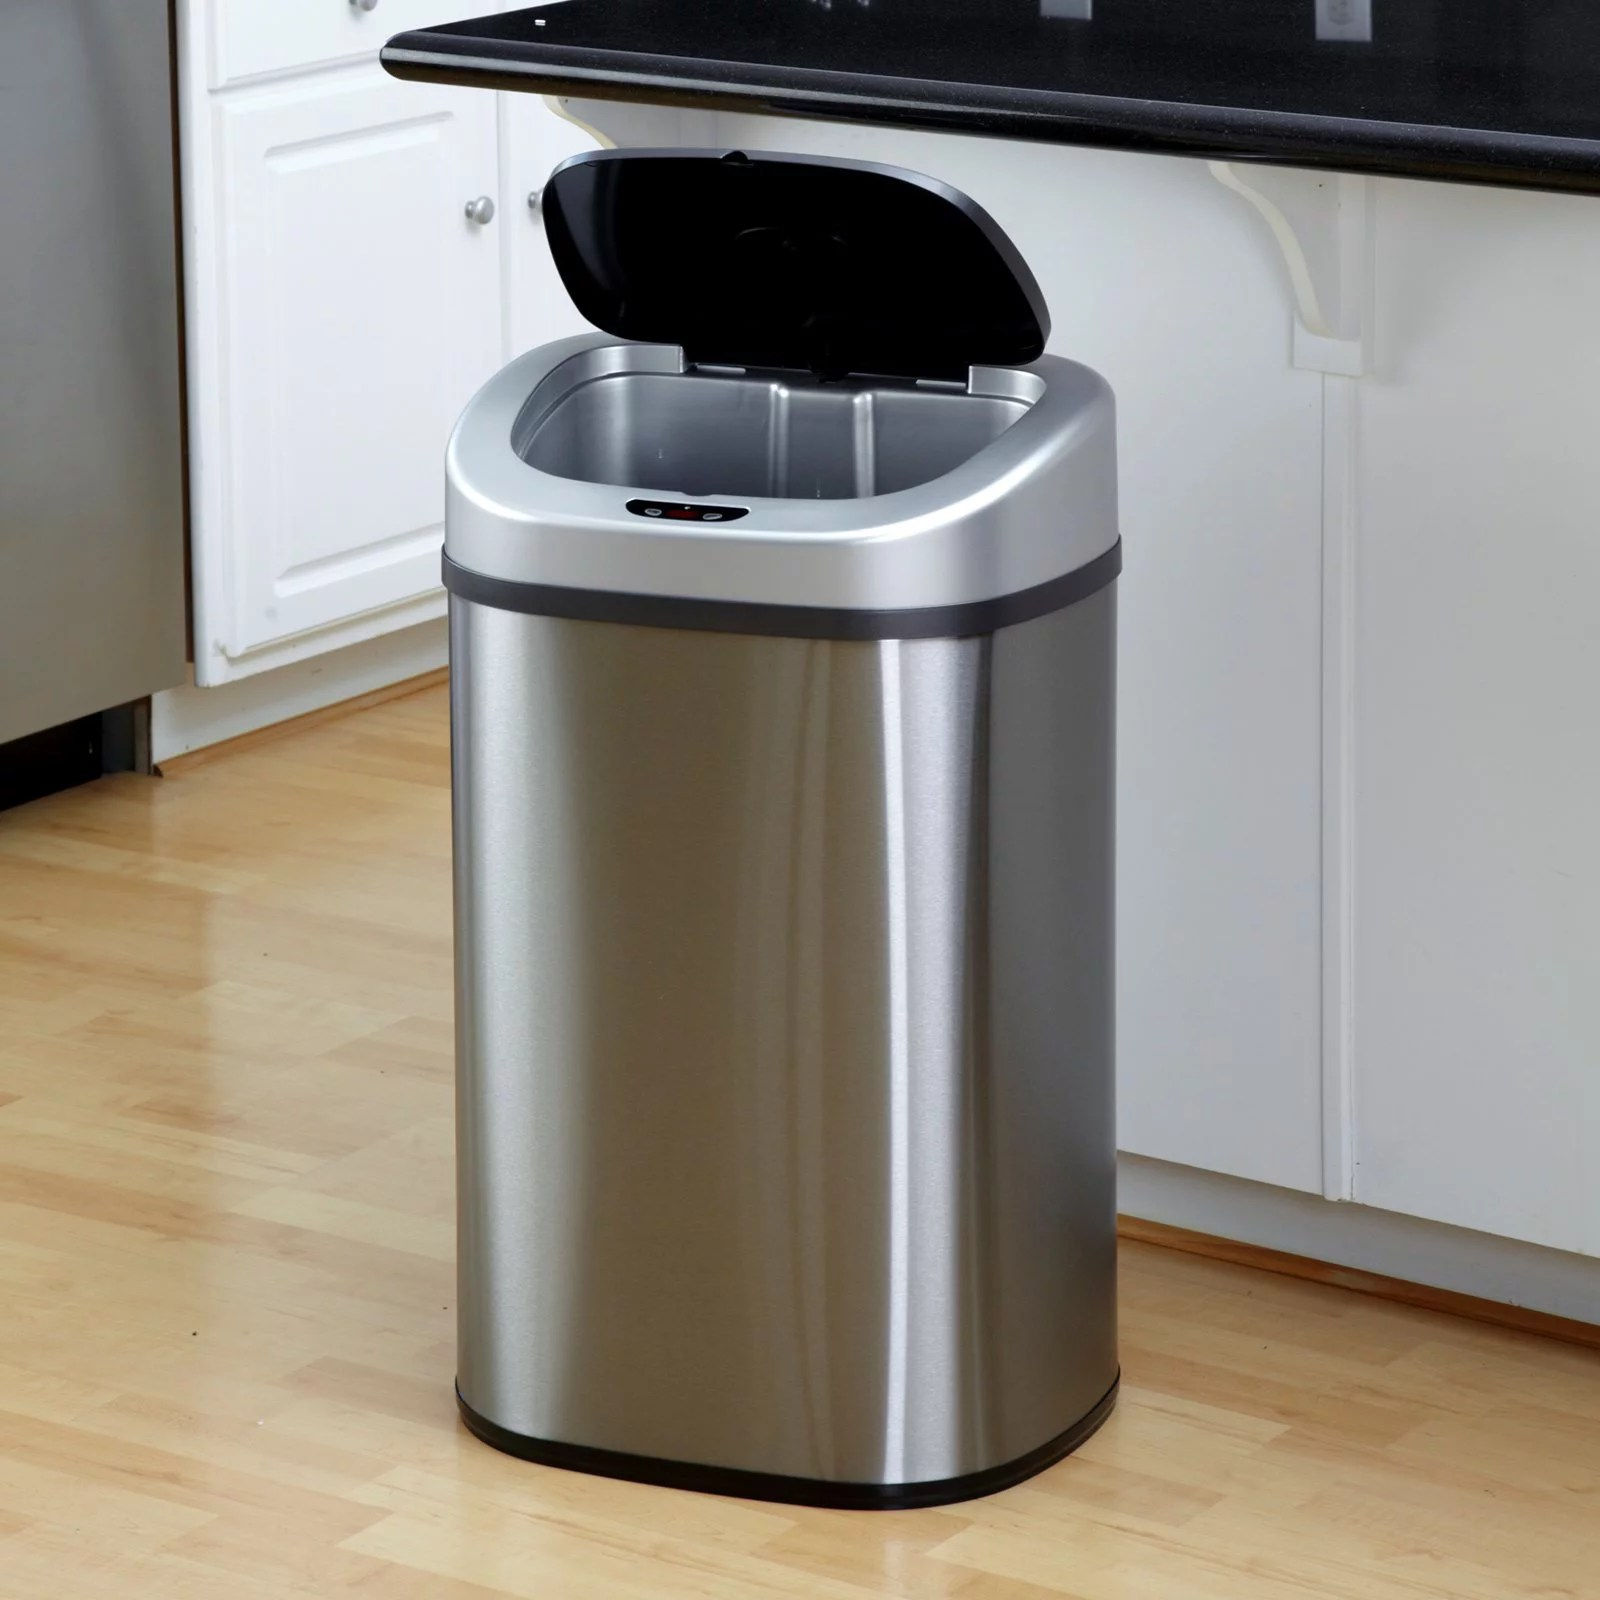 Garbage Bins Walmart Itouchless Stainless Steel 13 Gallon Motion Sensor Trash Can